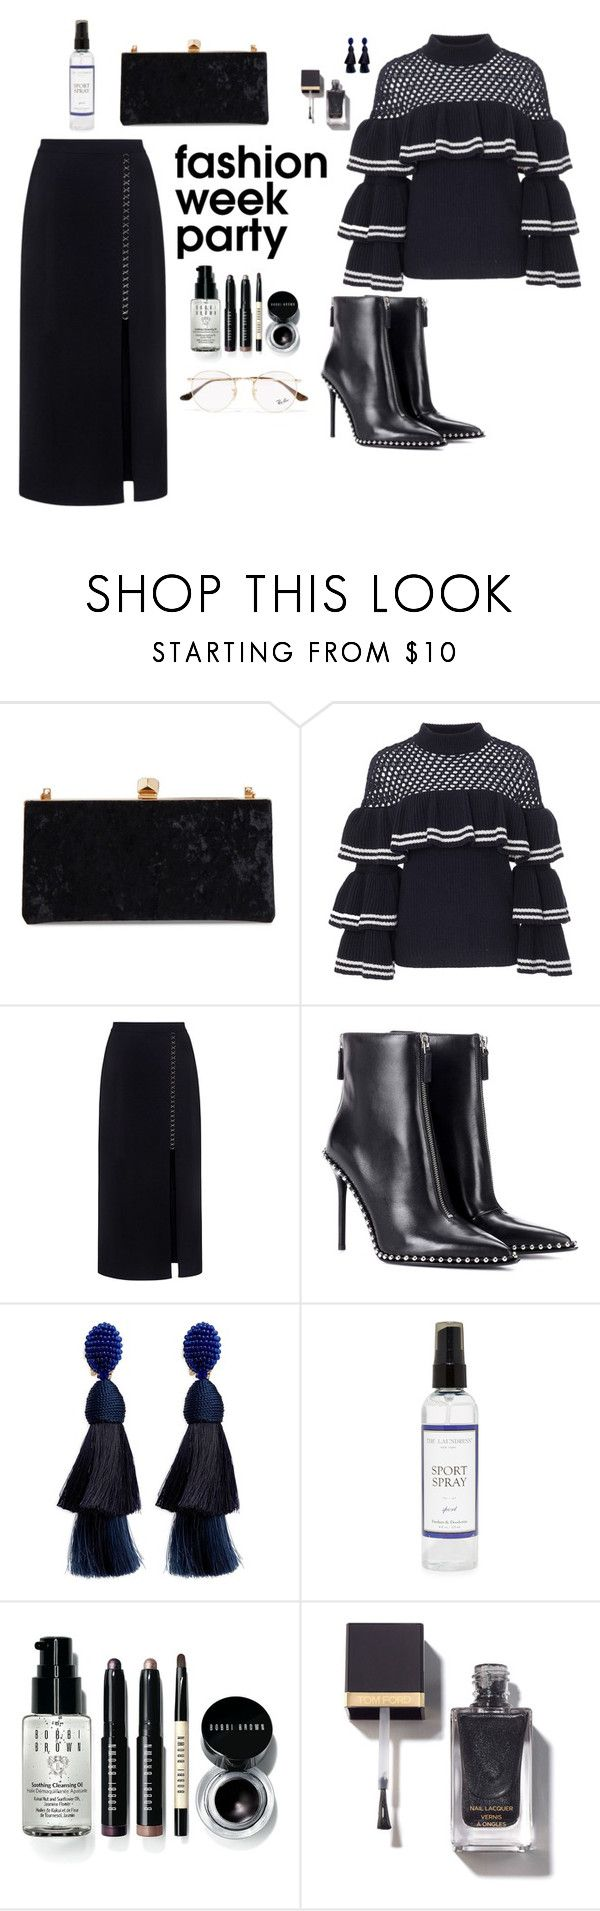 """Nocturnal Events"" by flarewitchproject ❤ liked on Polyvore featuring Jimmy Choo, self-portrait, A.L.C., Alexander Wang, Oscar de la Renta, The Laundress, Bobbi Brown Cosmetics, Ray-Ban and afterparty"